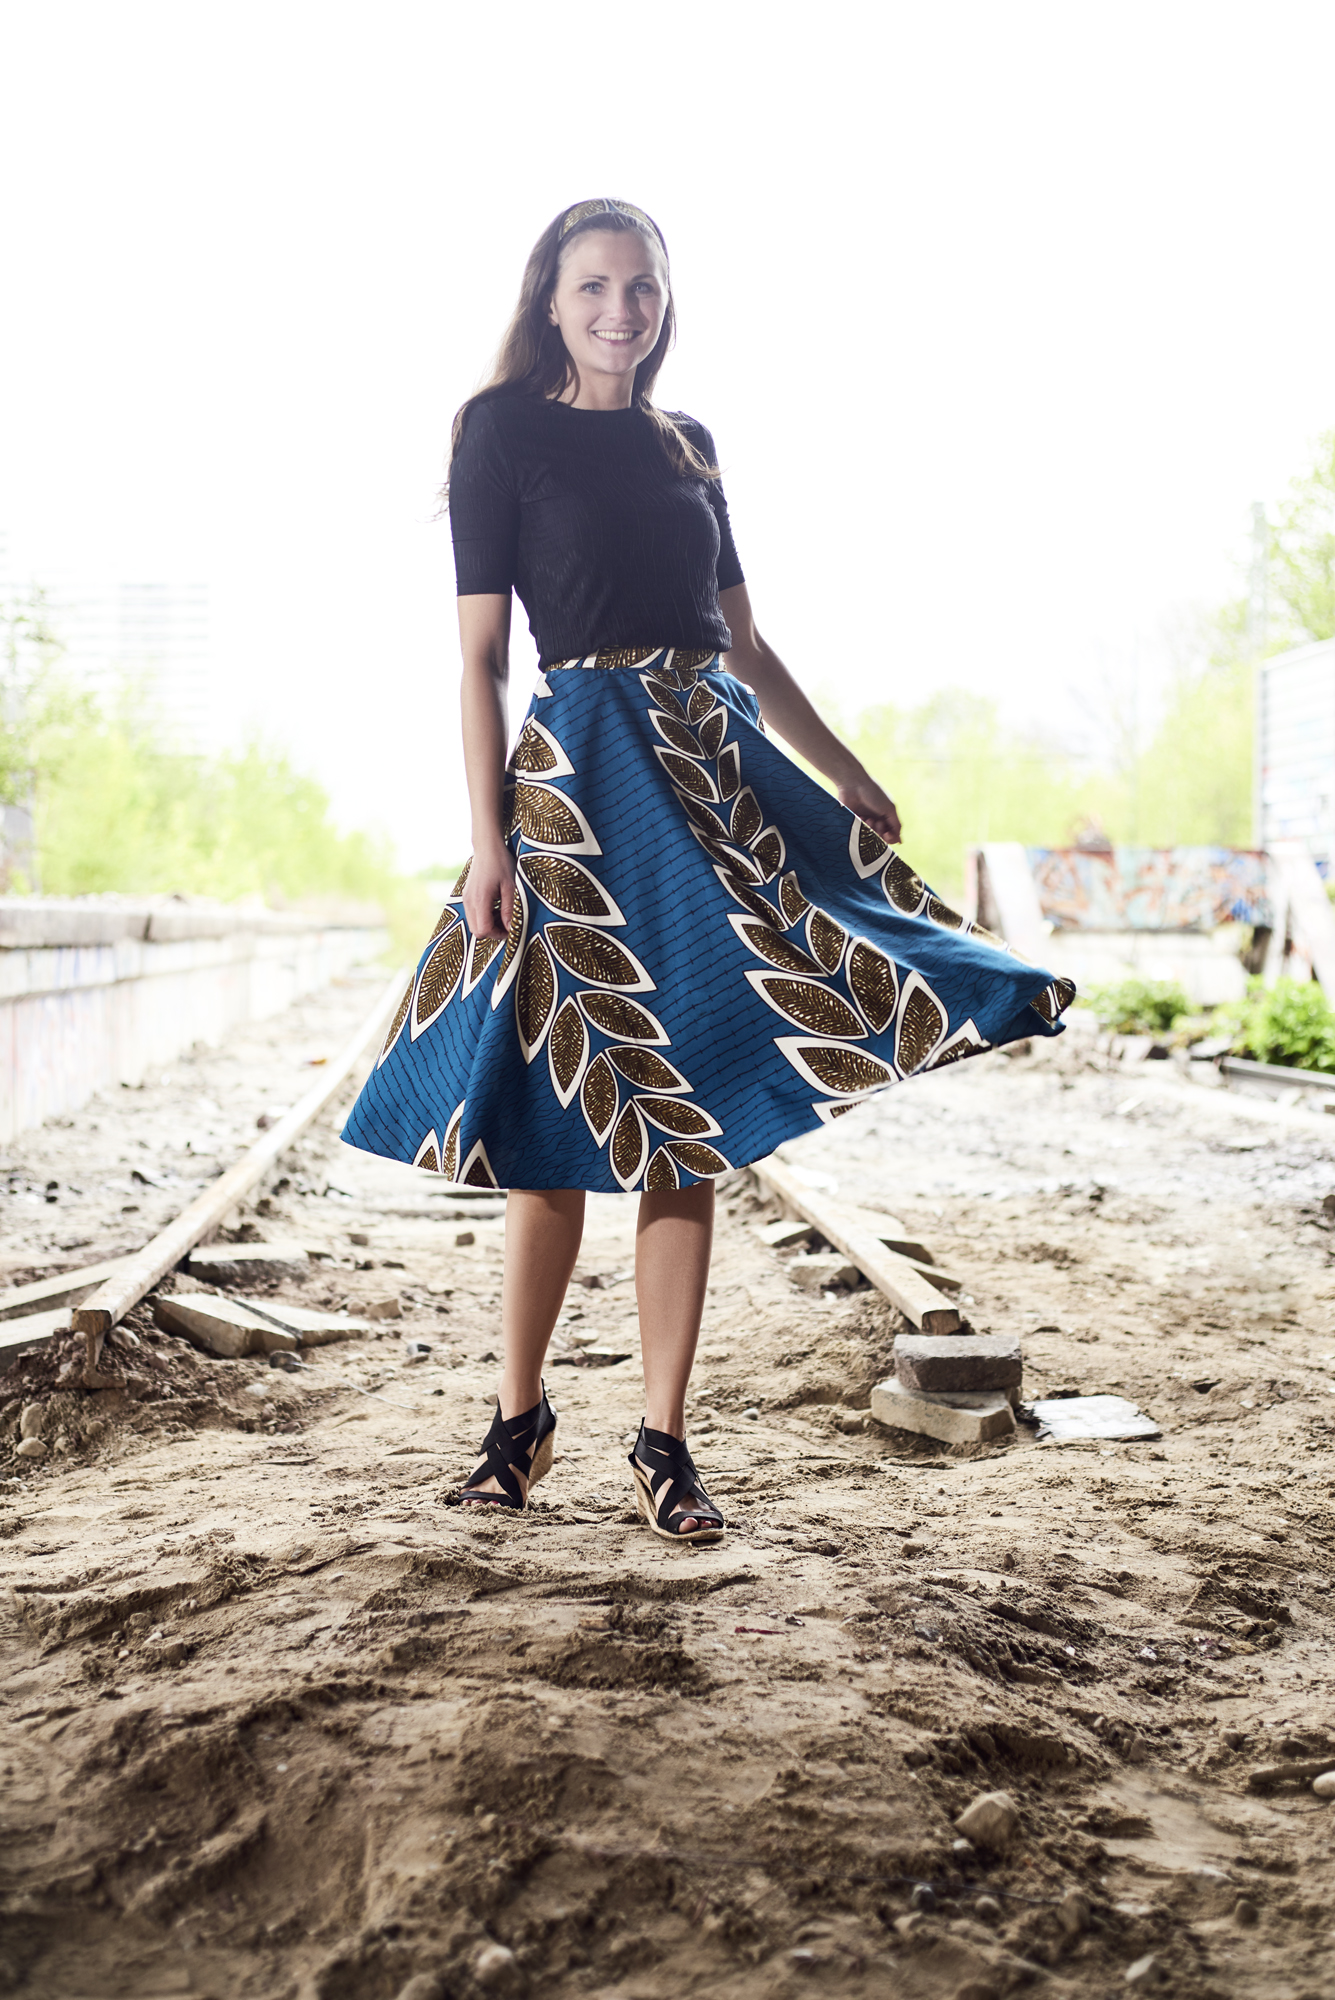 Khala – Fair Fashion from Malawi | Kickstarter Crowdfunding | Foto: Khala | GROSS∆RTIG